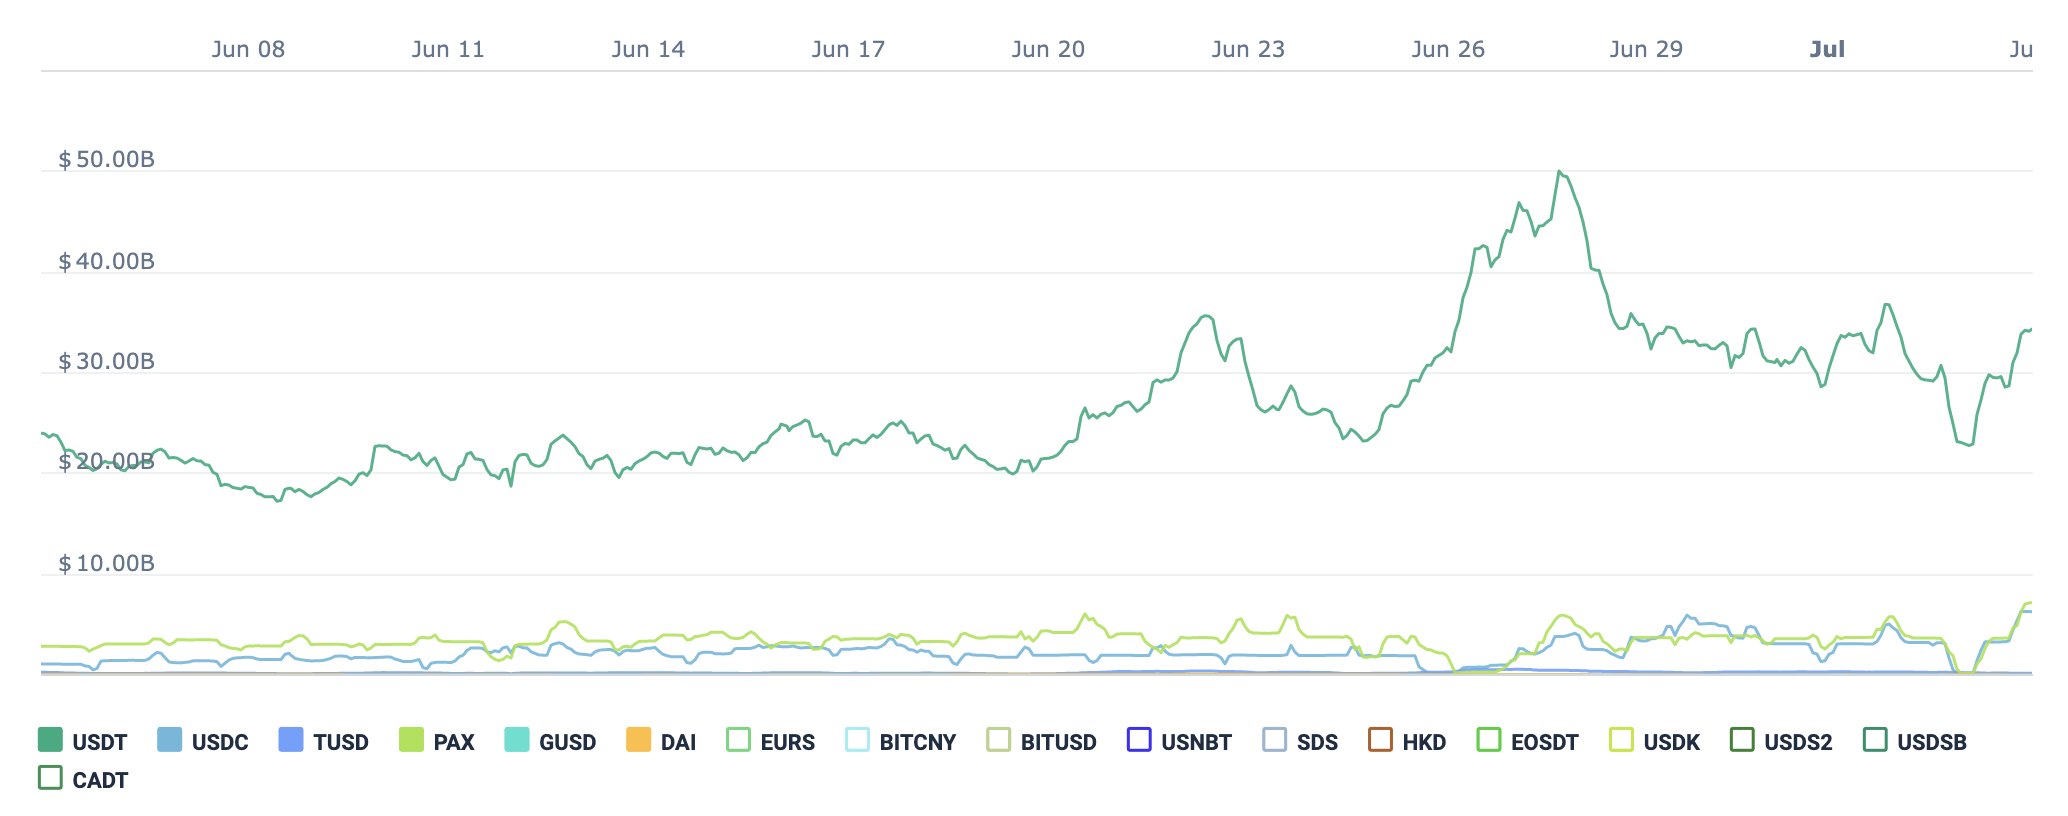 Competing Stablecoins Can't Topple Tether